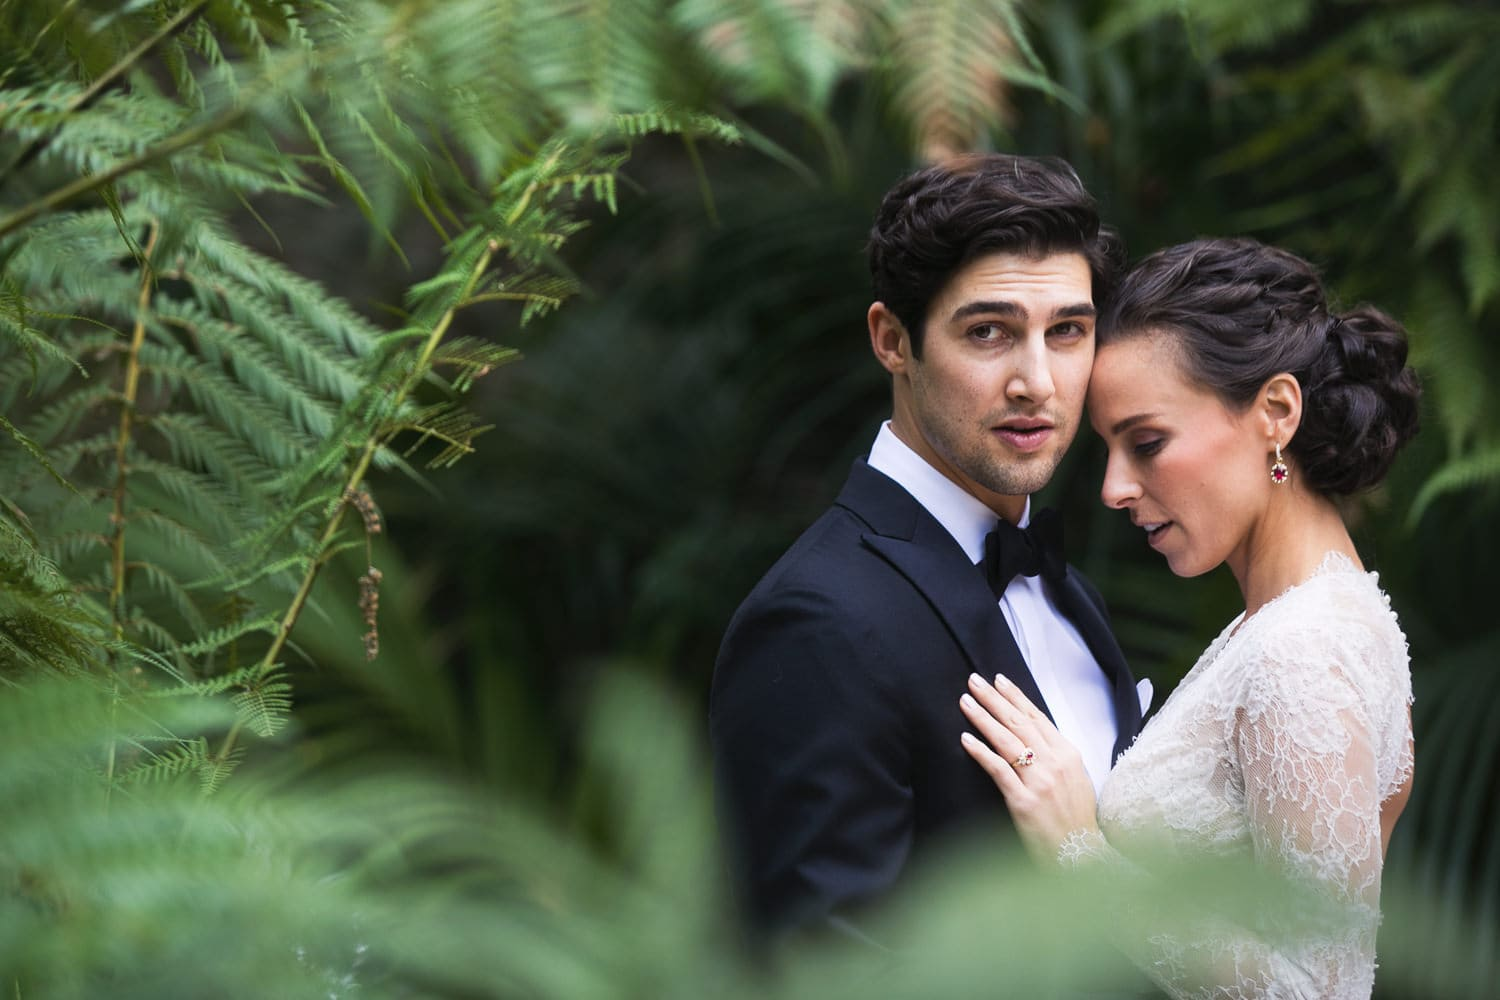 Stunning wedding photo by the swans at Hotel Bel-Air